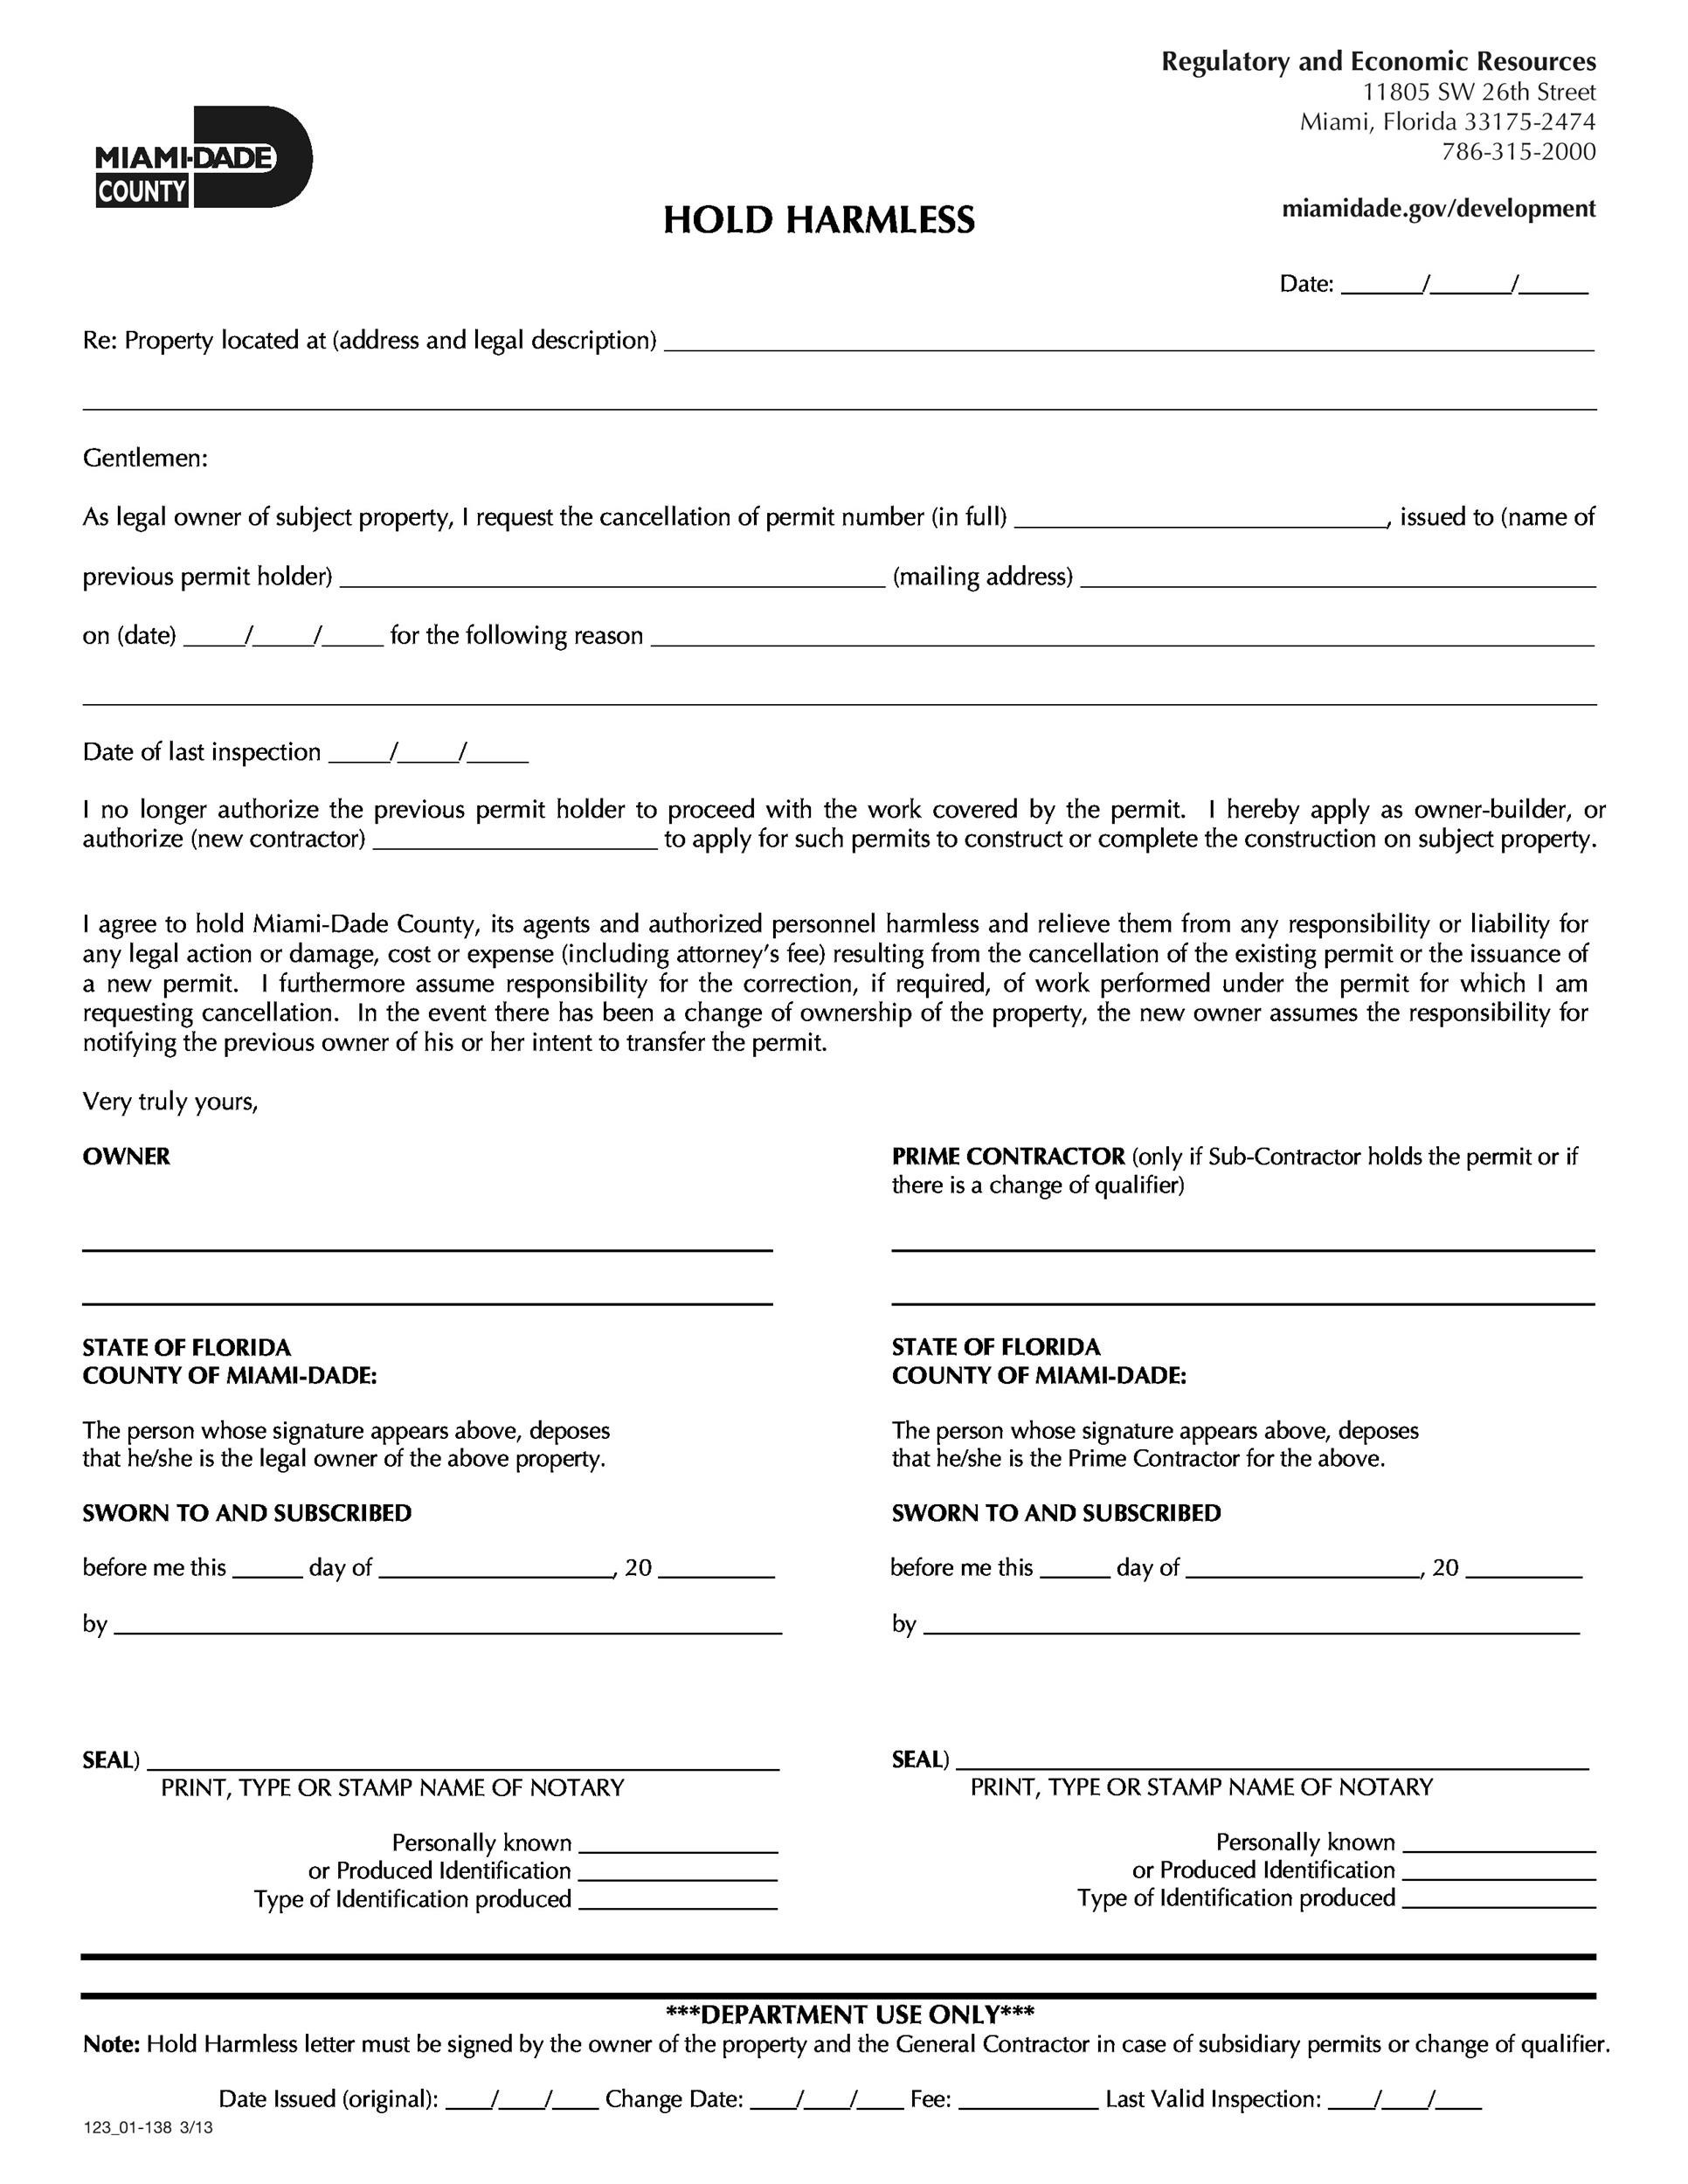 Free Hold Harmless Agreement Template 21